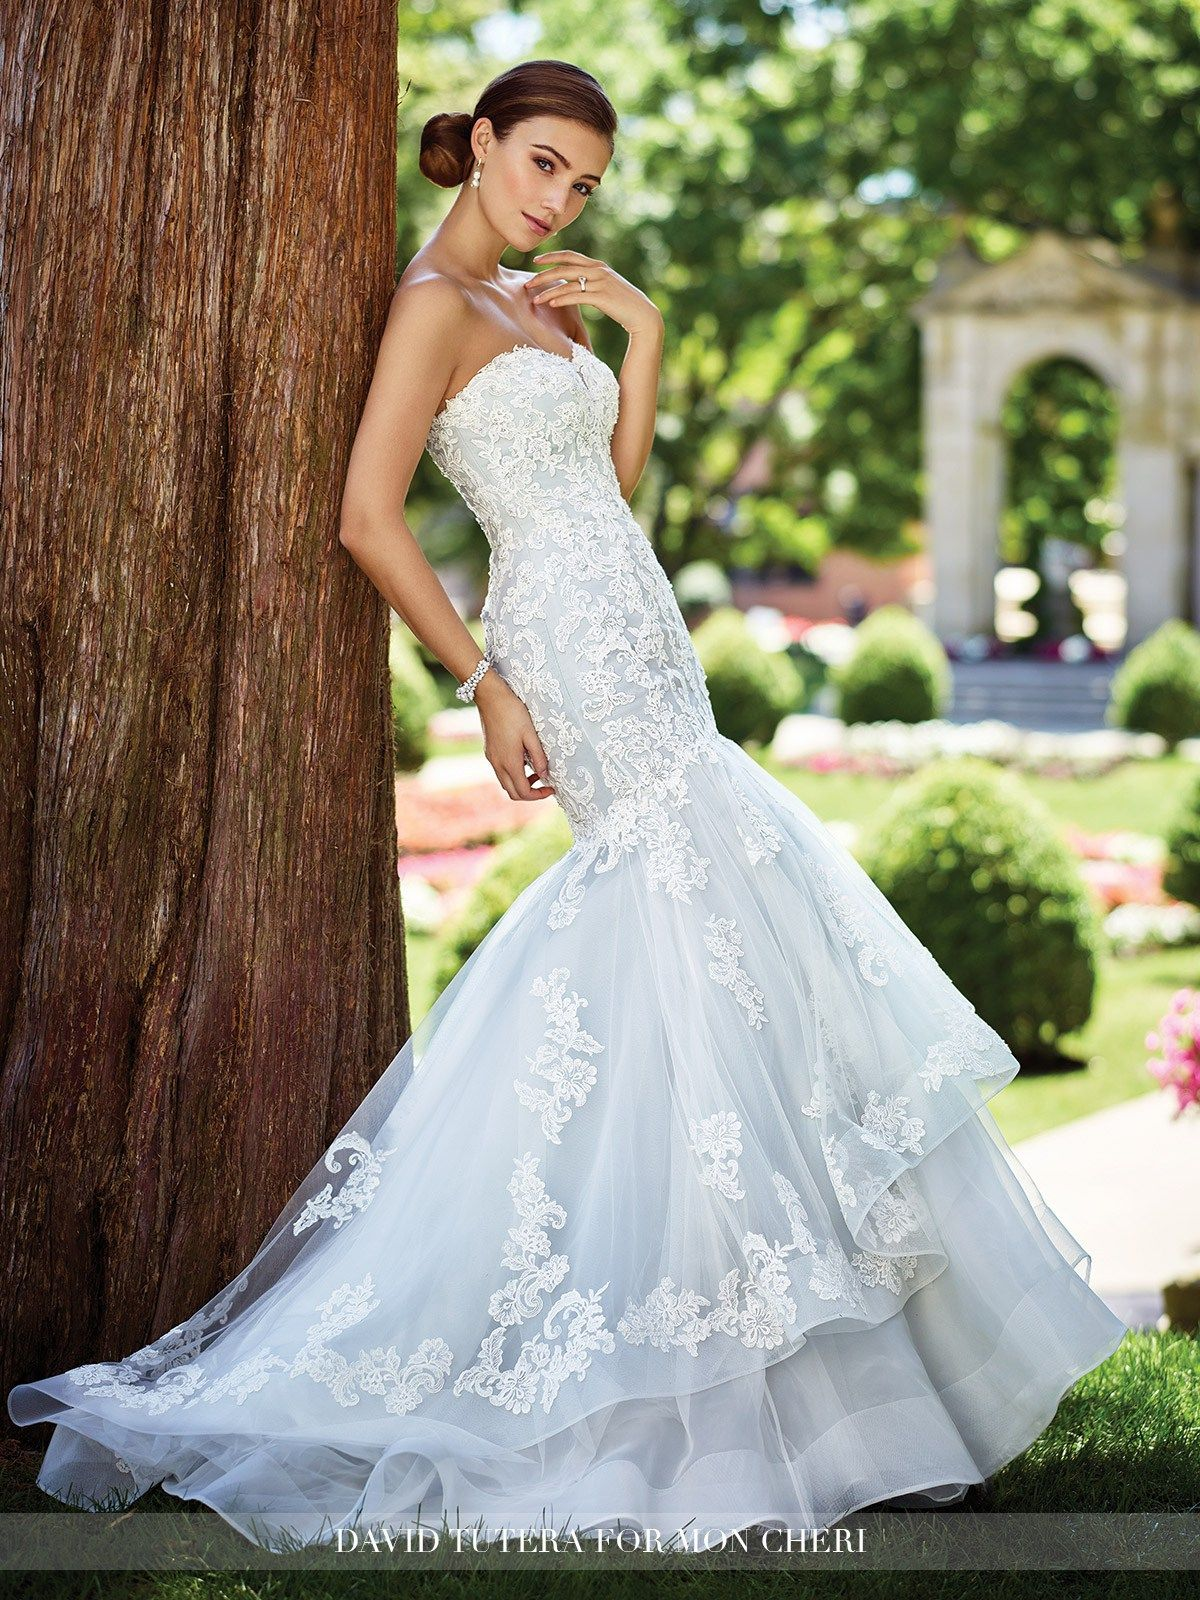 50 Wedding Dresses Miami Miracle Mile Plus Size For Guests Check More